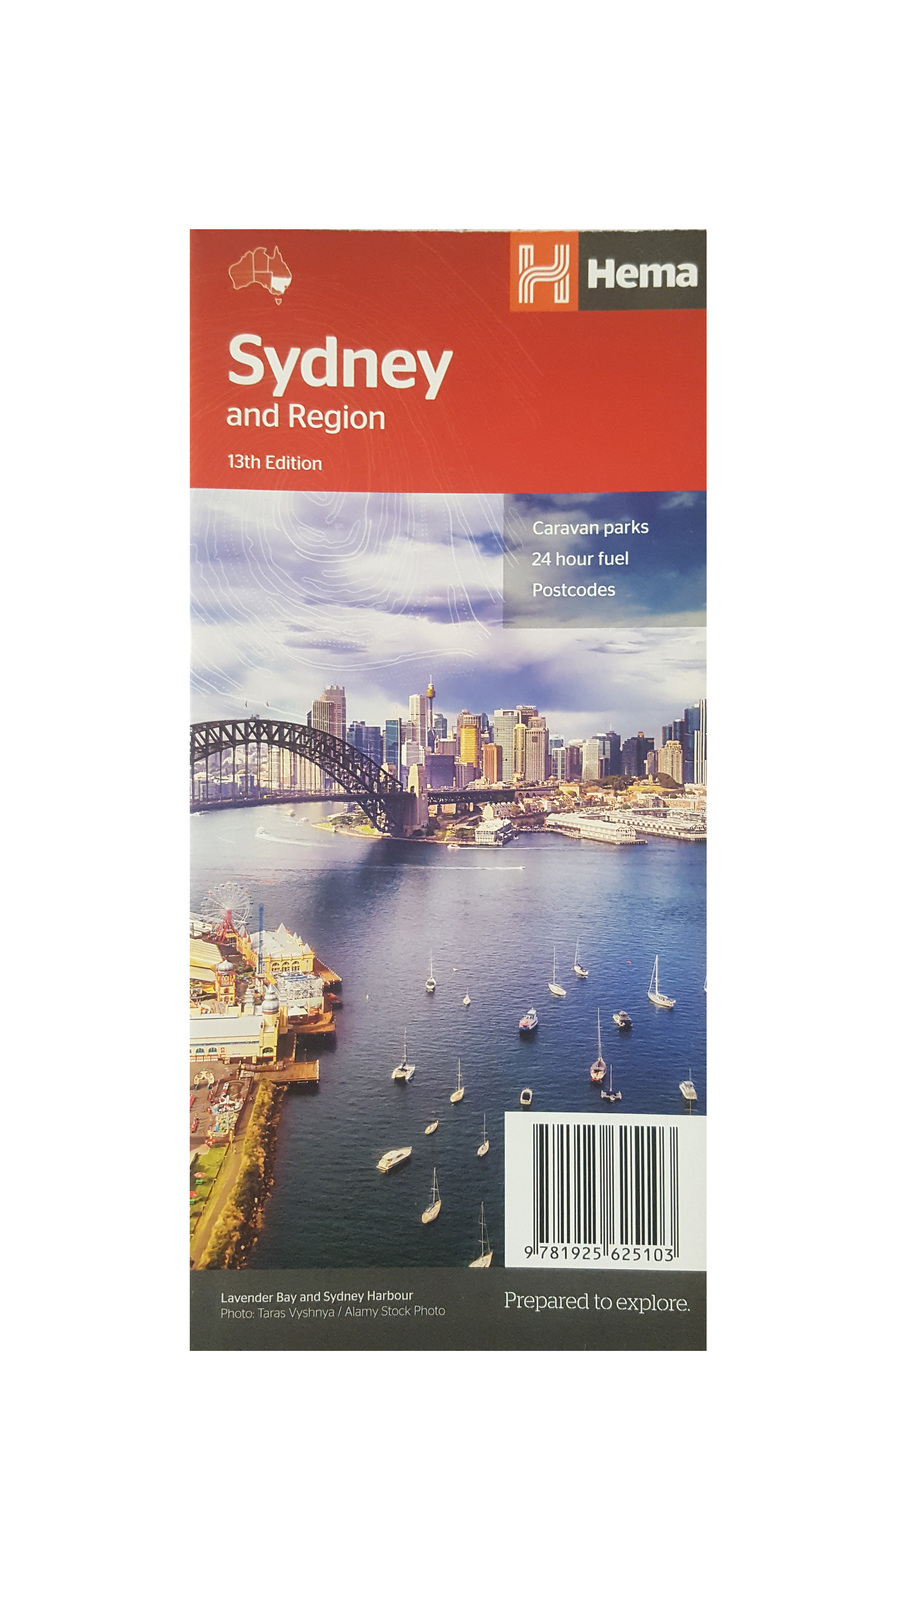 Hema Sydney & Region Map - Edition 13